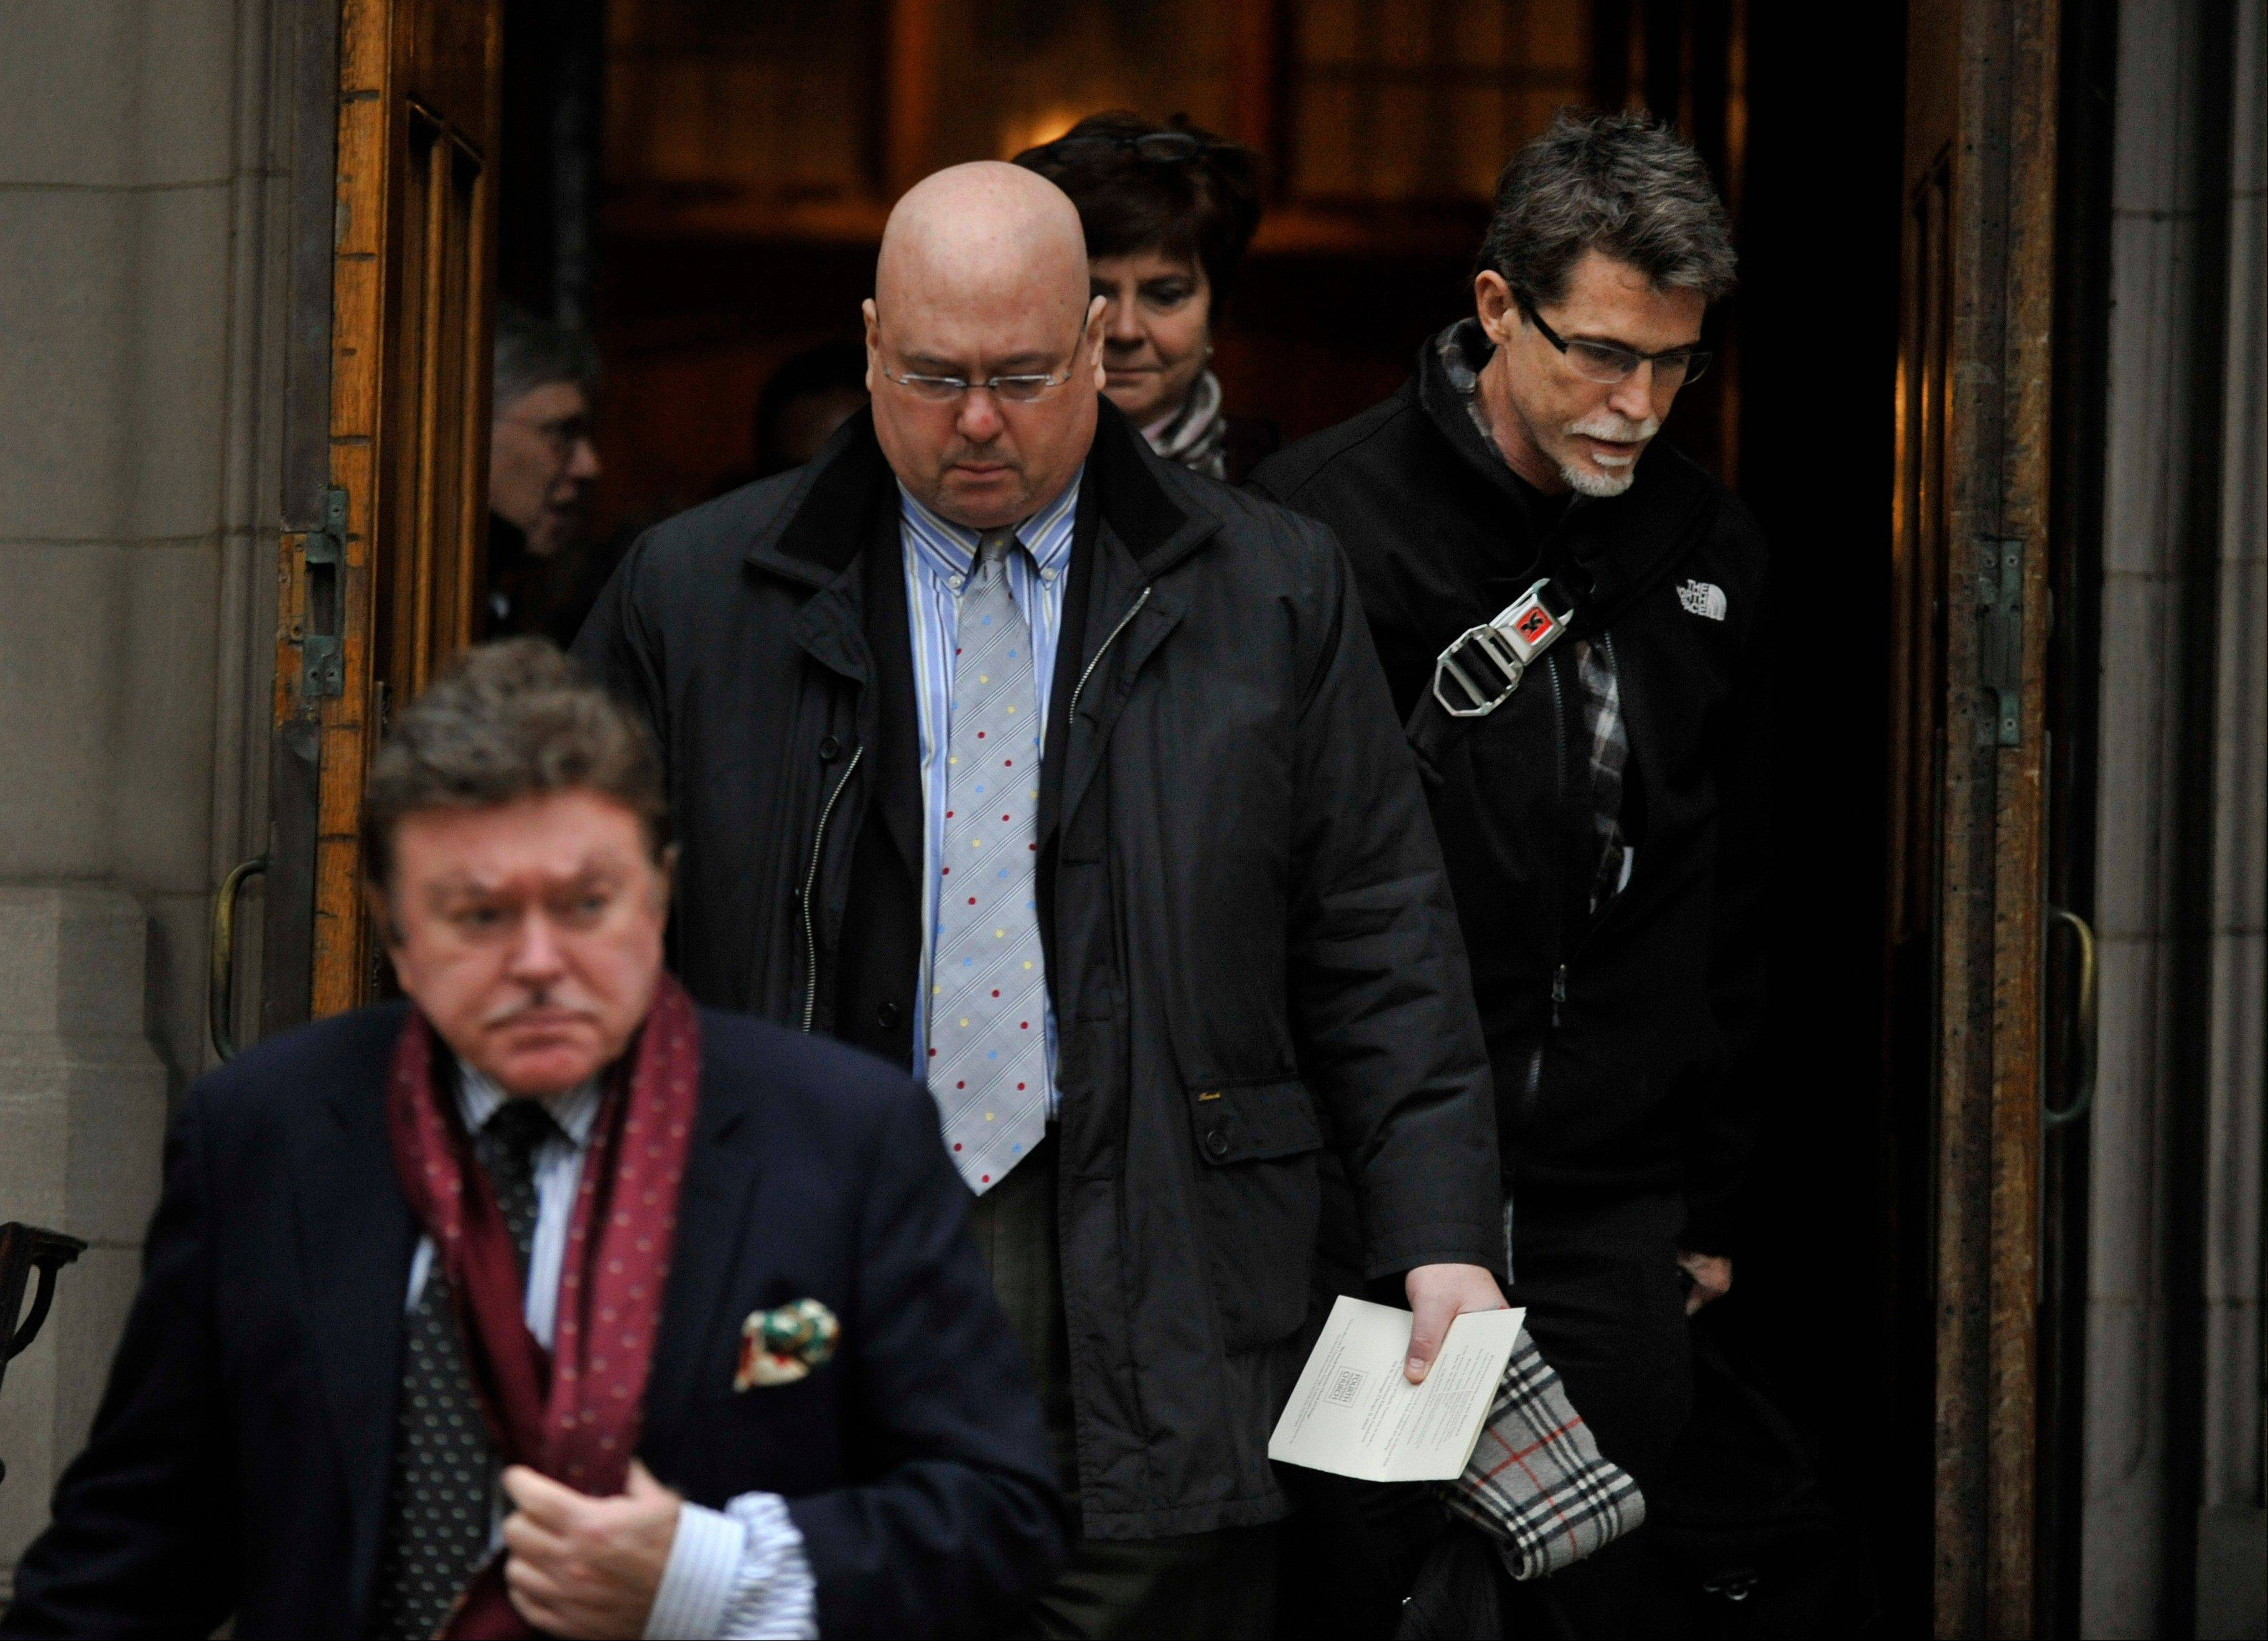 Chef Rick Bayless right, along with other mourners leave the Fourth Presbyterian Church after Monday's memorial for celebrity chef Charlie Trotter in Chicago. Trotter died last week at 54.